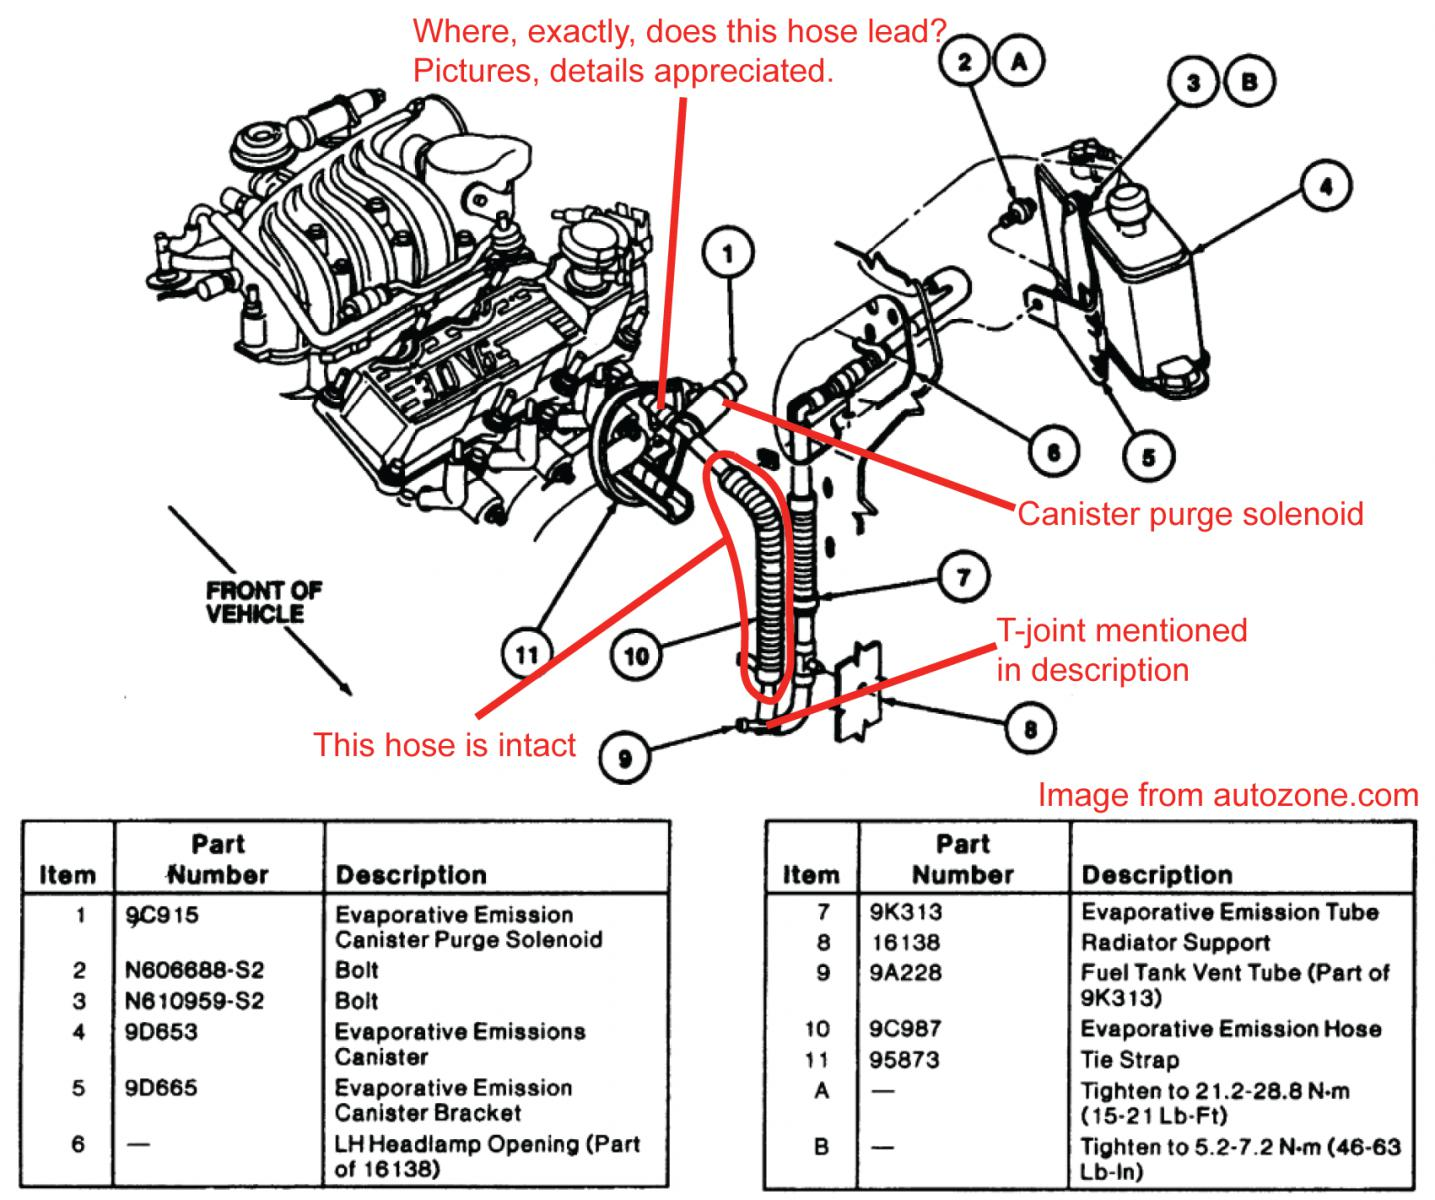 fuel vapor return tube connection 93 taurus gl 3 0 l gas taurus rh taurusclub com 1999 Ford Taurus Parts Diagram Ford 3.0 V6 Engine Diagram